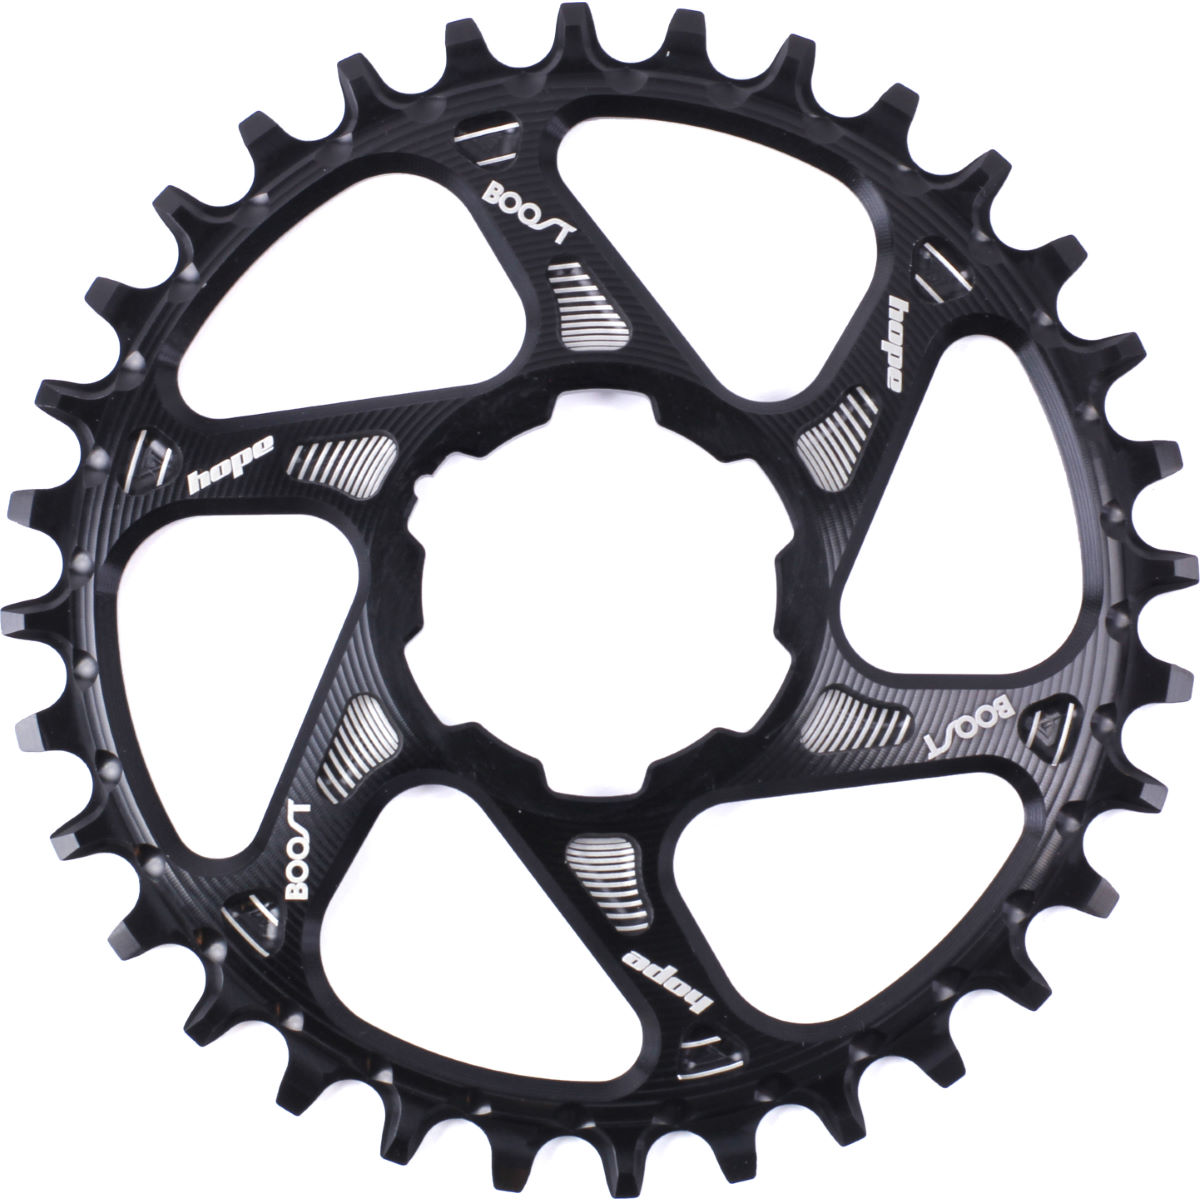 Plateau de retenue Hope Spiderless Boost - 36t 9/10/11 Speed Noir